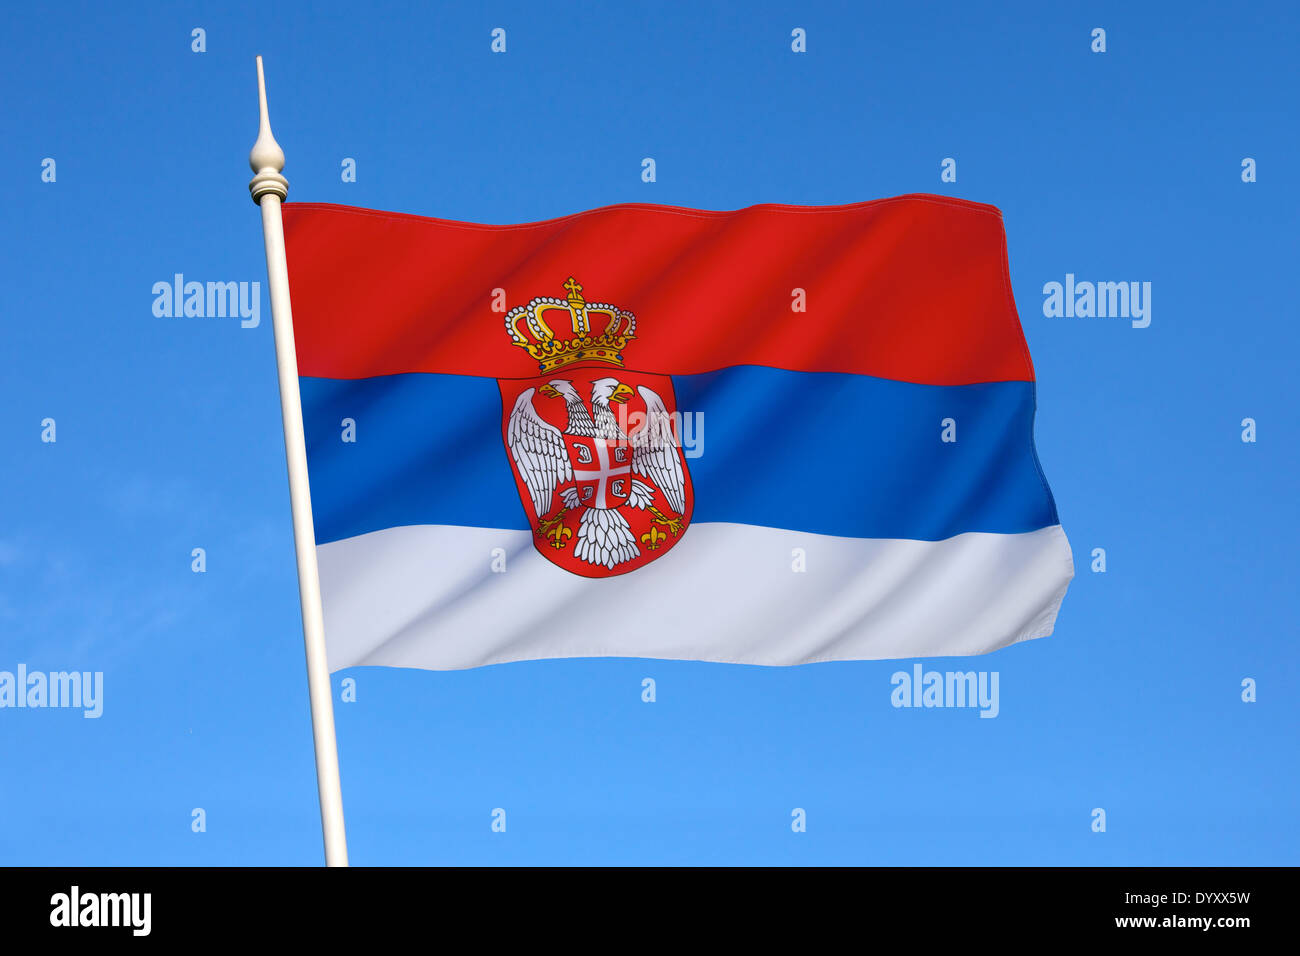 Flag of Serbia - Stock Image